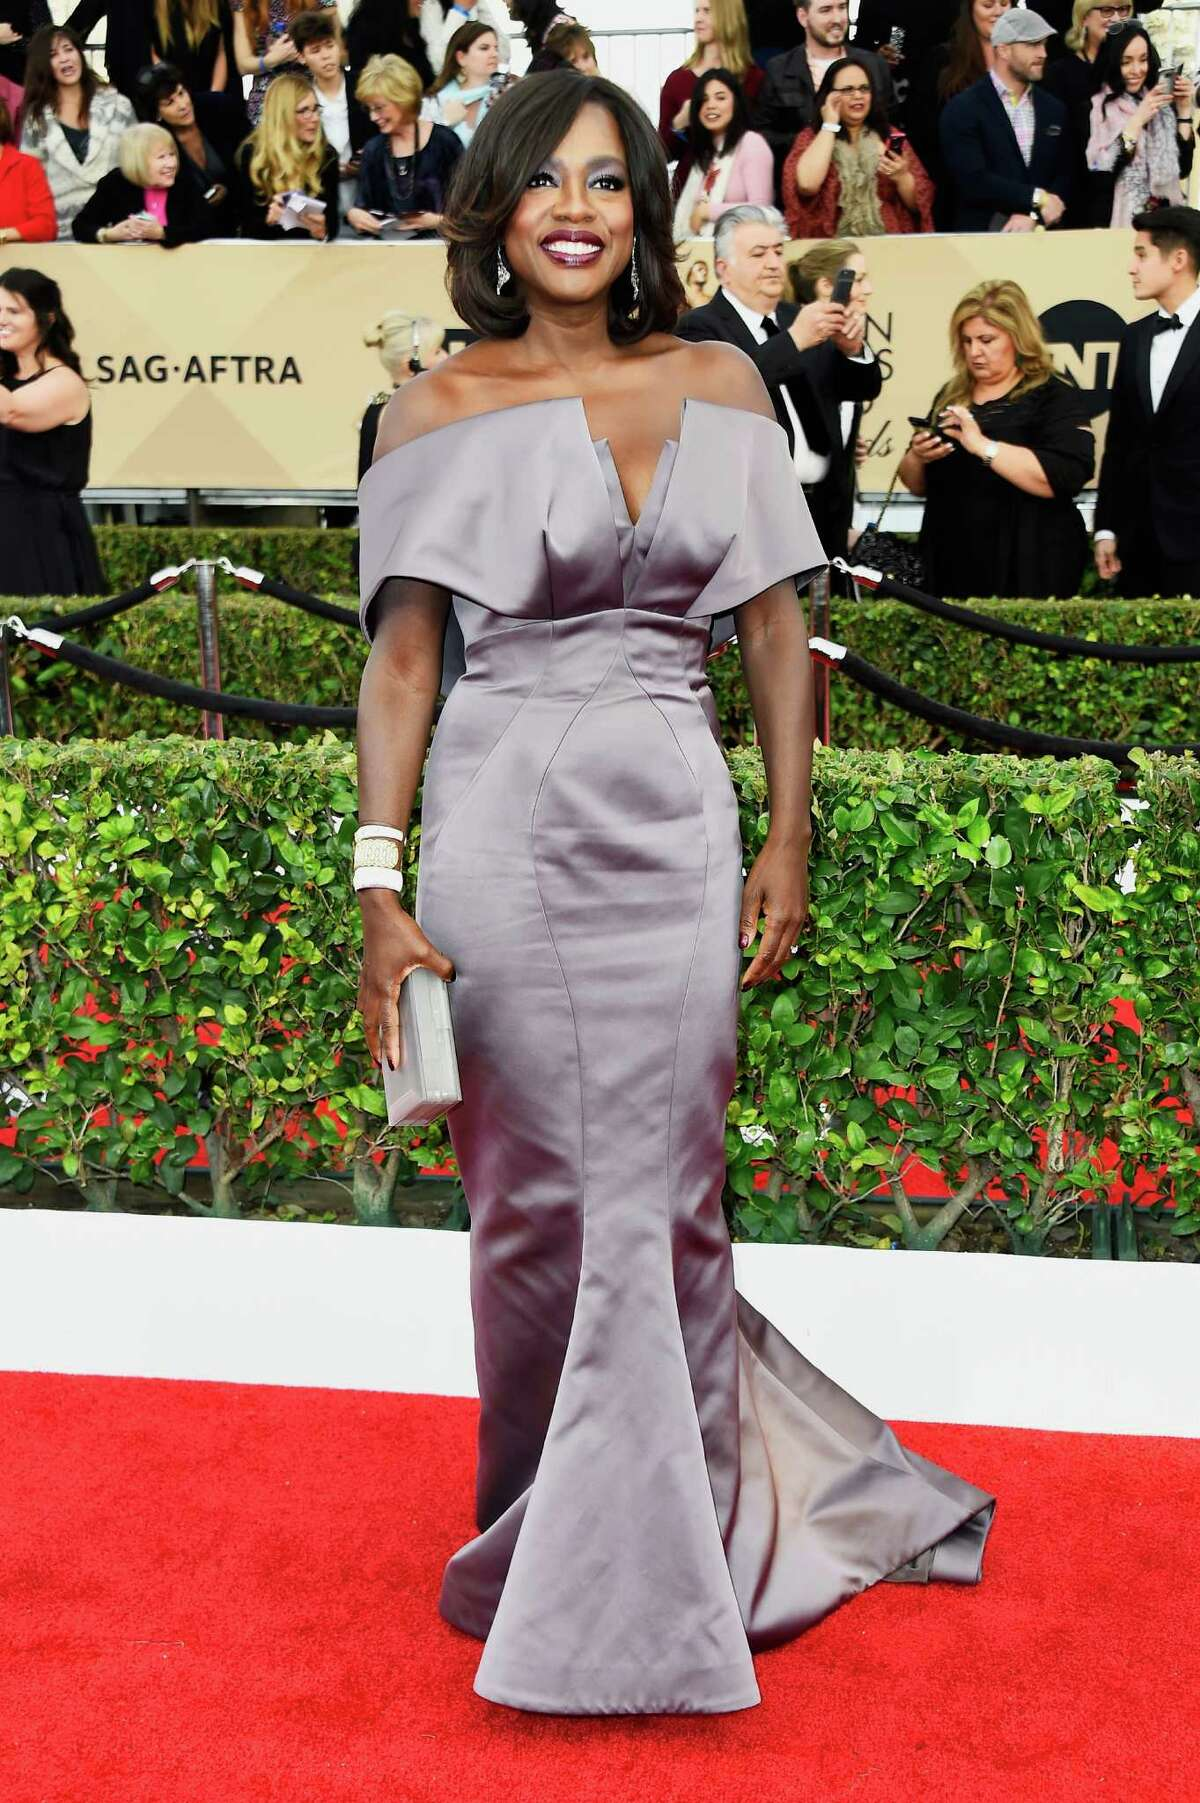 LOS ANGELES, CA - JANUARY 30: Actress Viola Davis attends the 22nd Annual Screen Actors Guild Awards at The Shrine Auditorium on January 30, 2016 in Los Angeles, California.